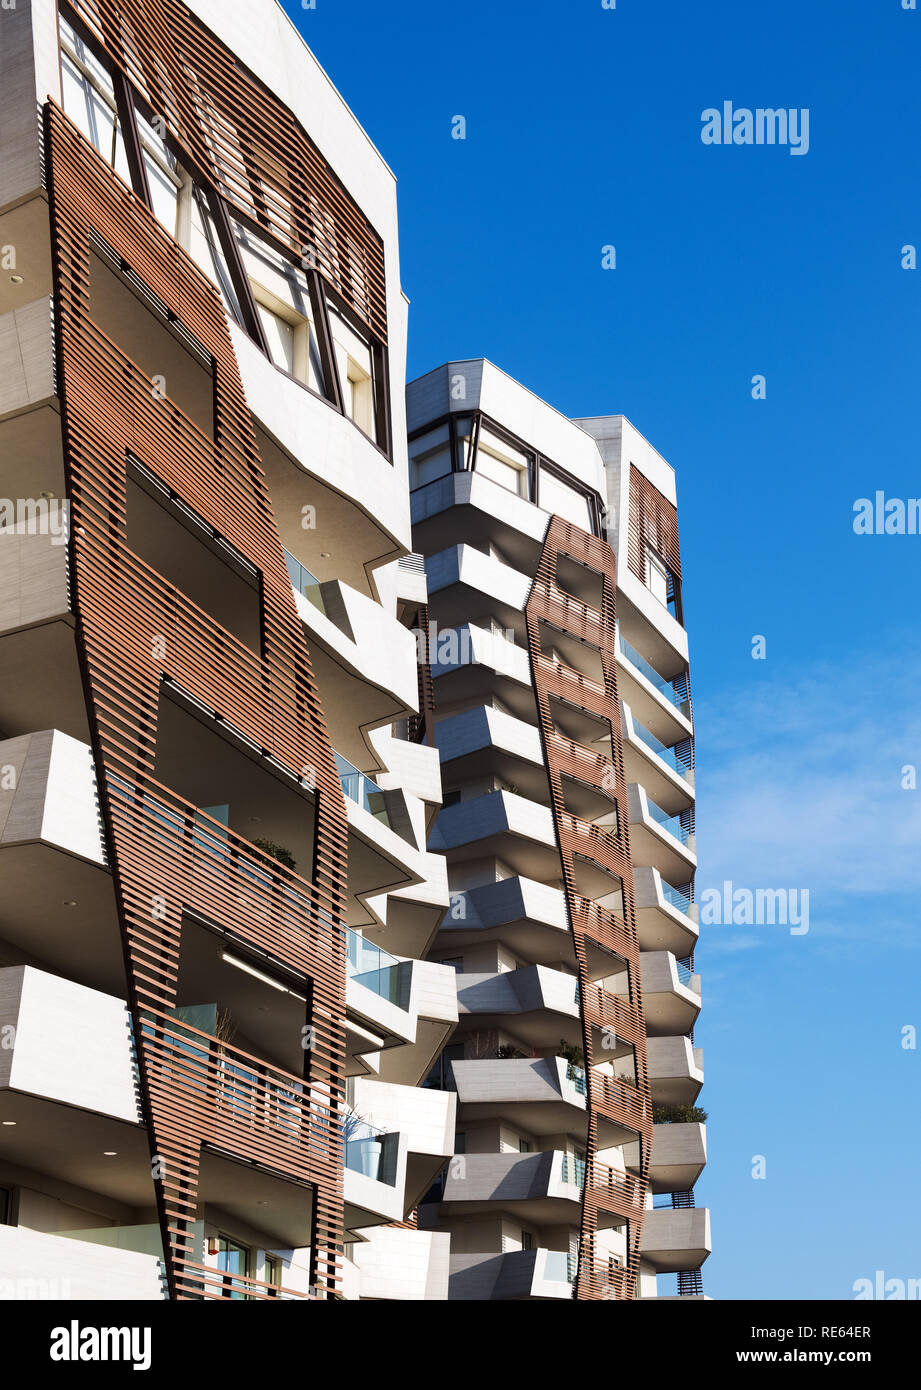 Timber cladding detail on modern apartment blocks with irregular warped angles on the building against a blue sky - Stock Image